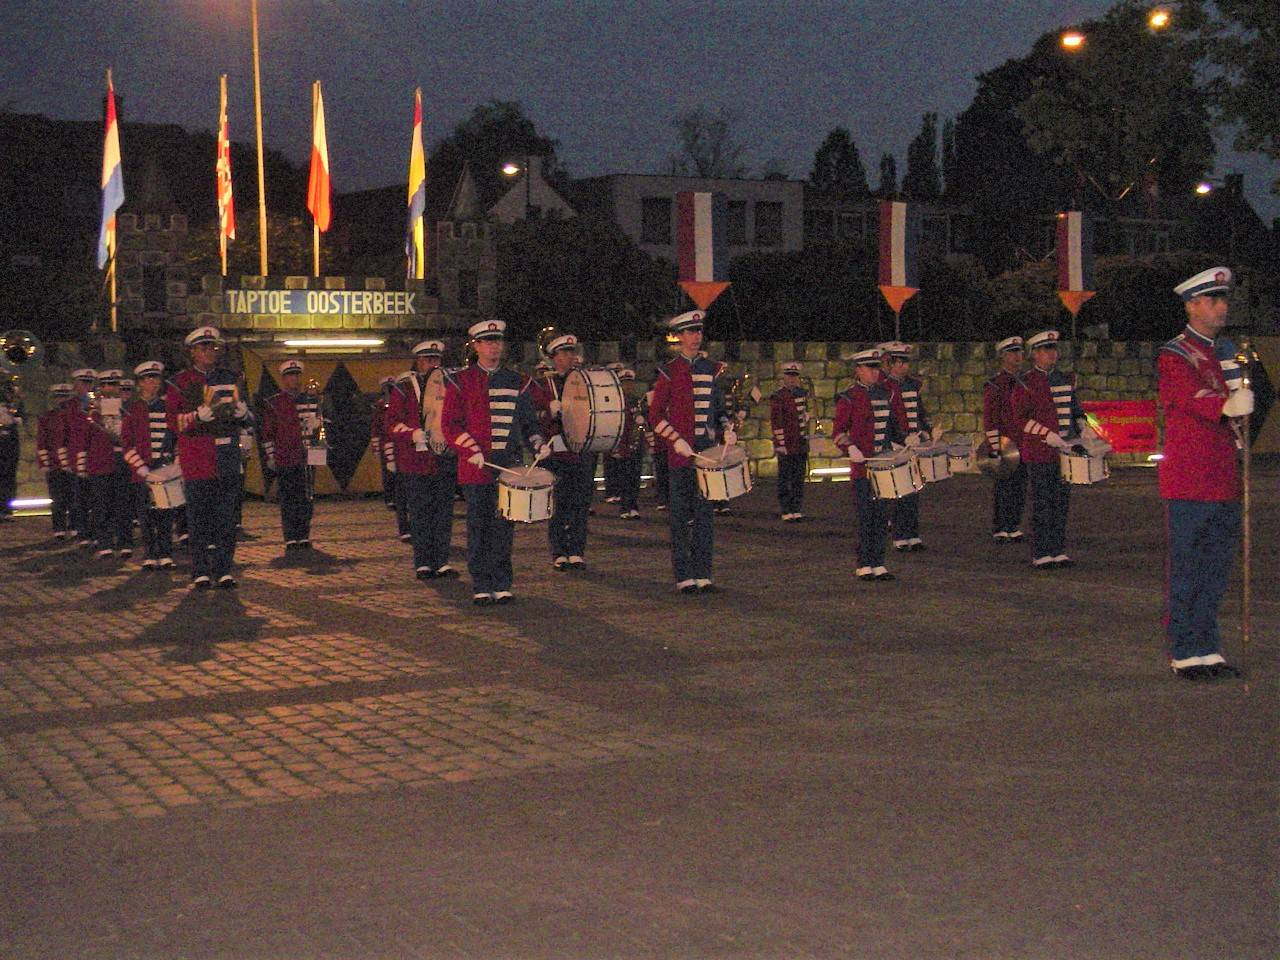 March & Showband Rheden